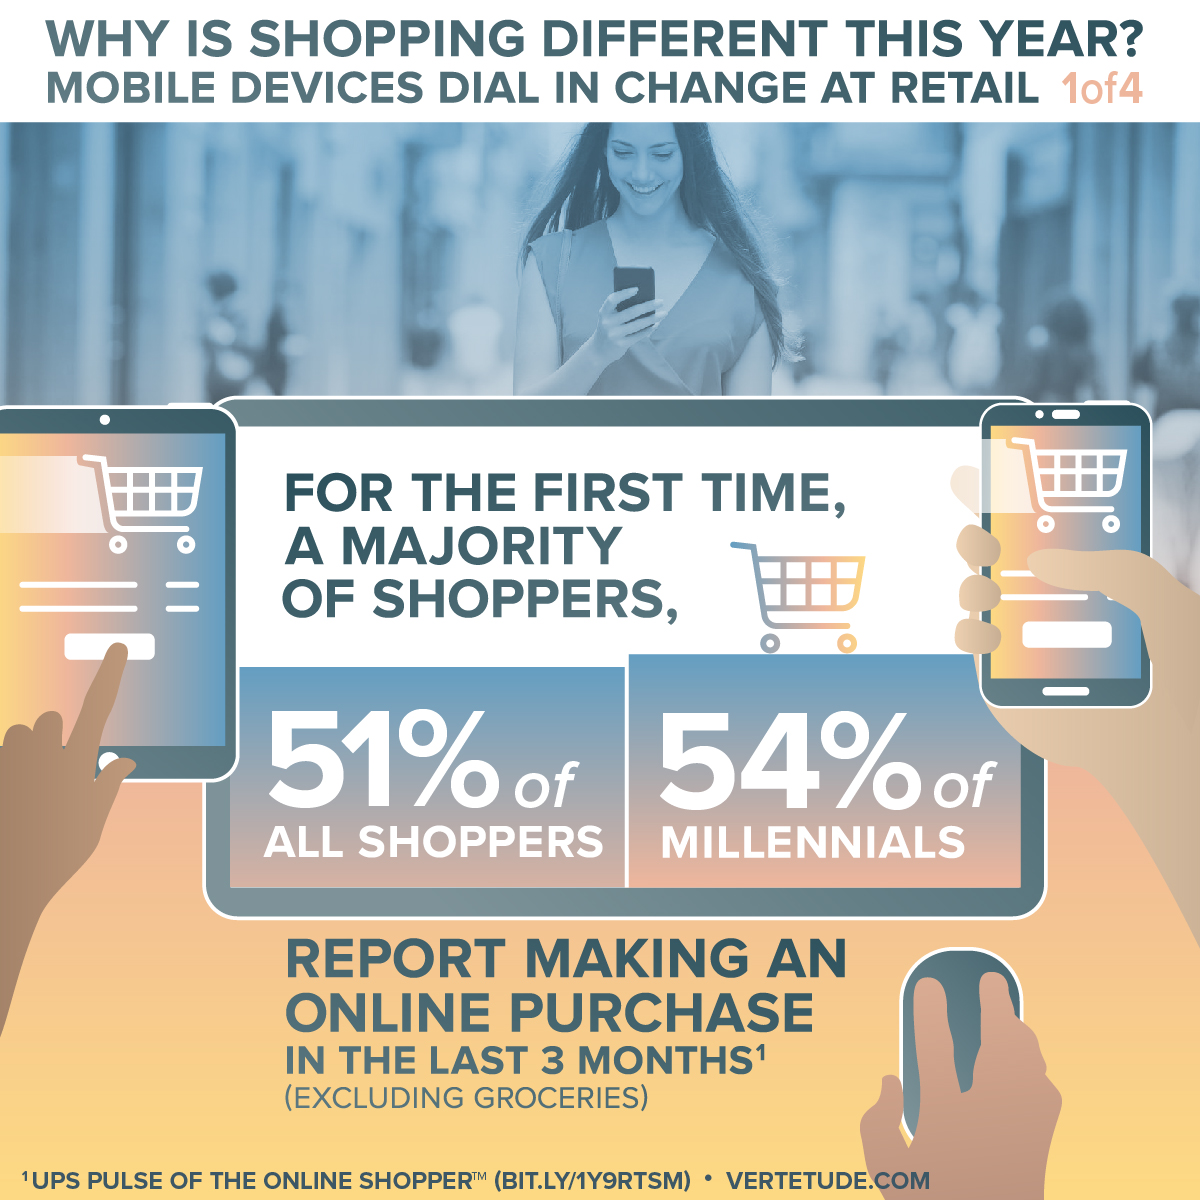 Infographic of mobile devices changing retail, majority of shoppers purchase online